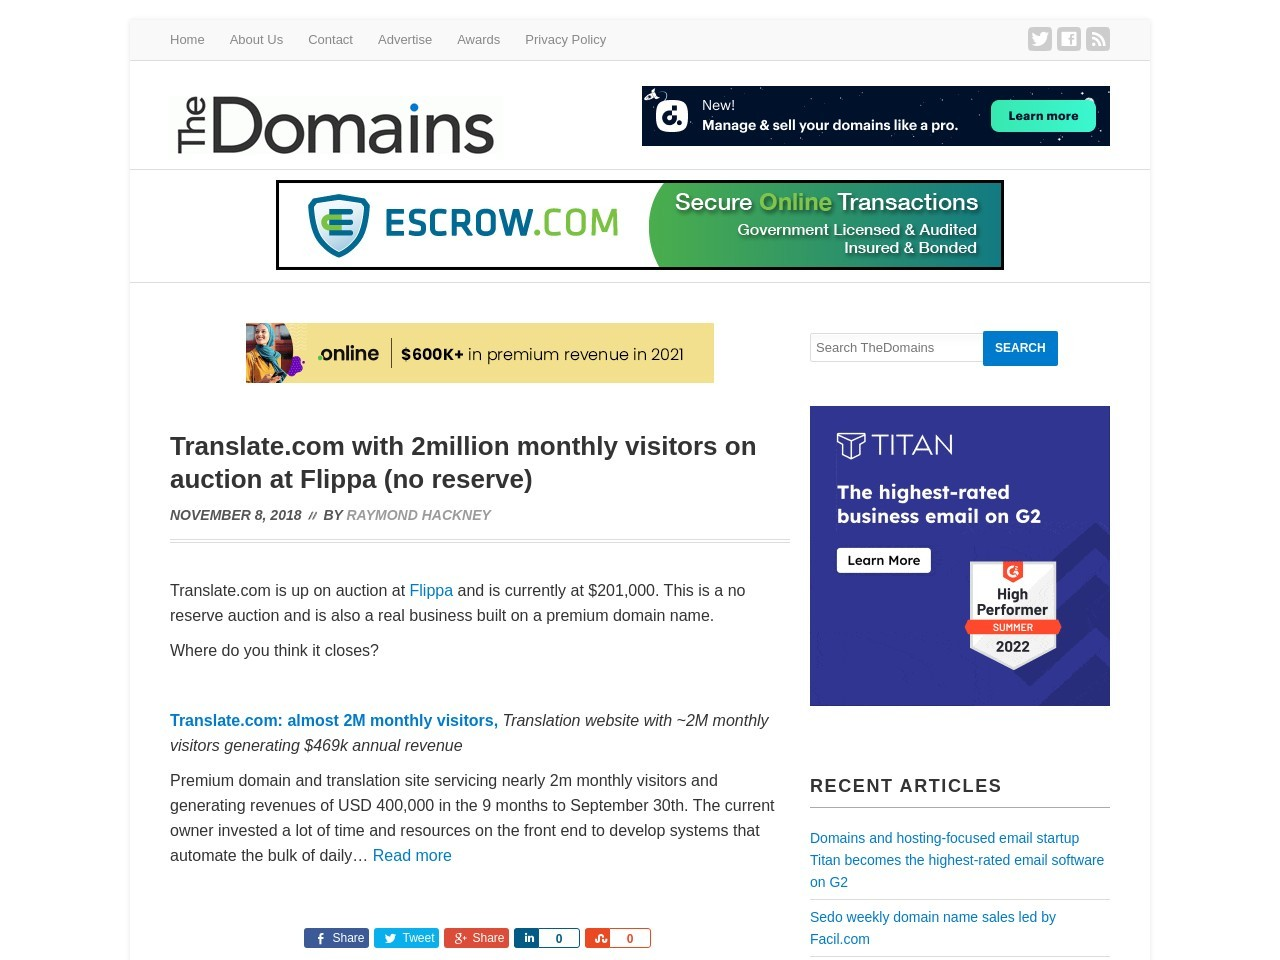 Translate.com with 2million monthly visitors on auction at Flippa (no reserve)